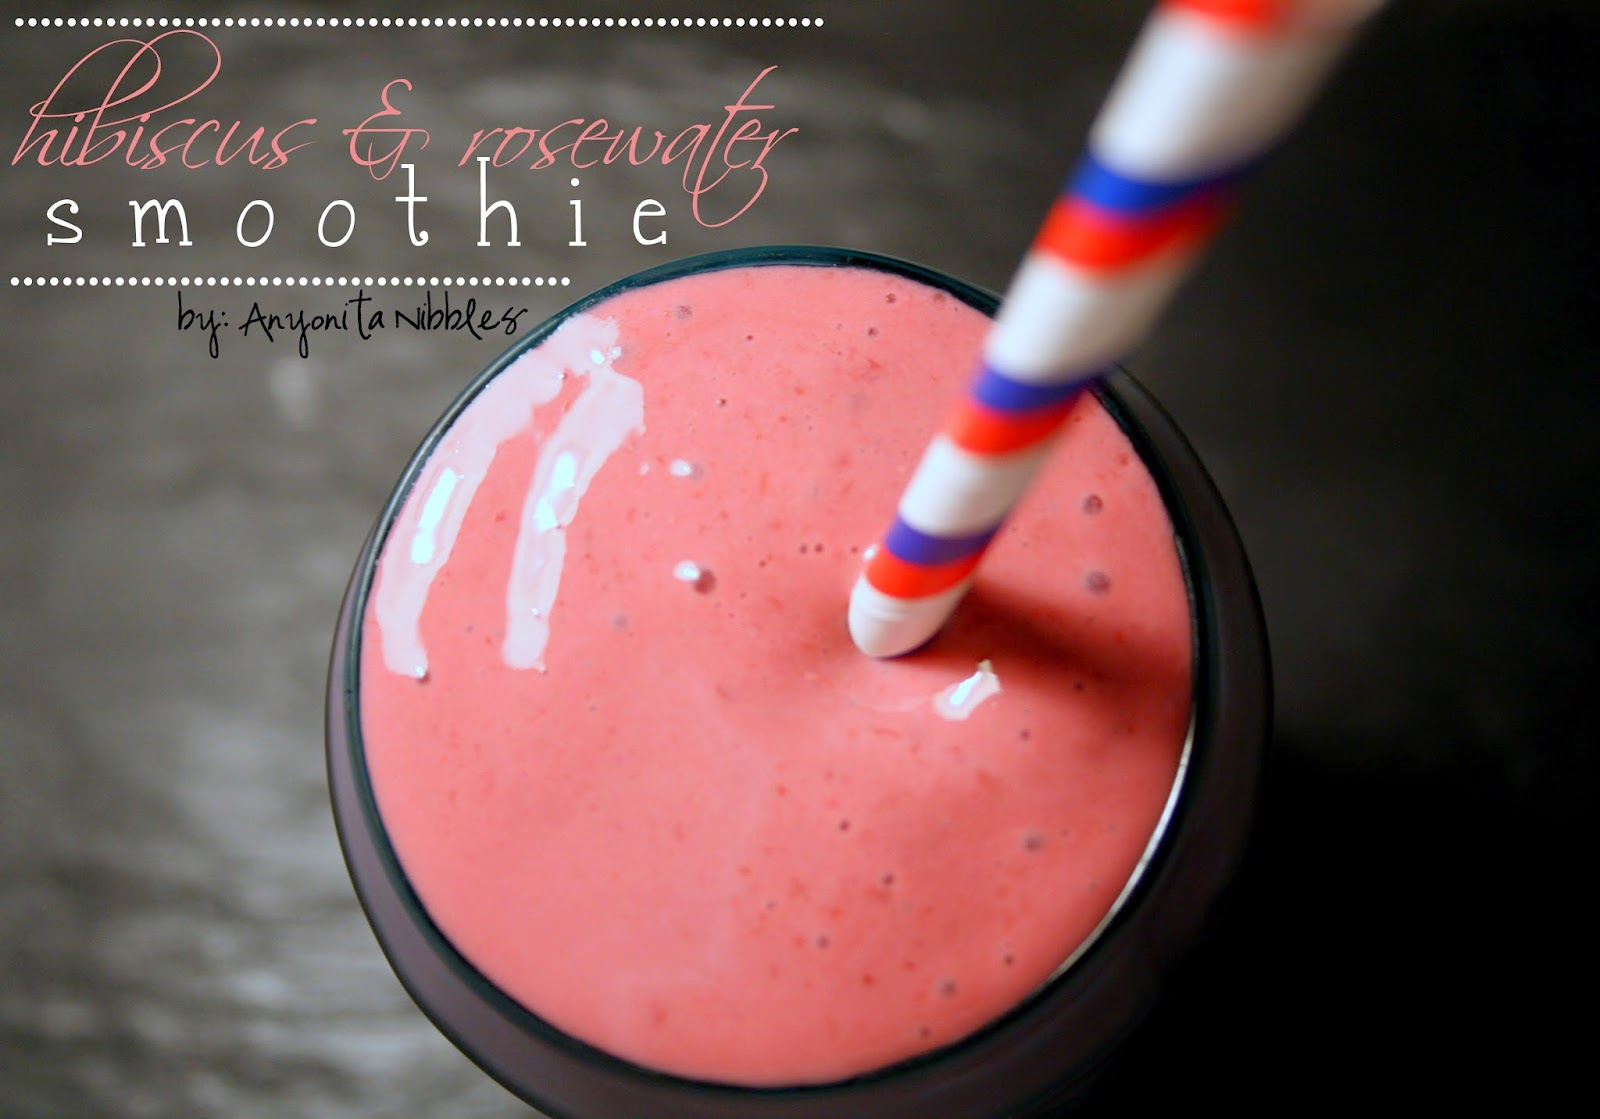 A floral and delicious smoothie